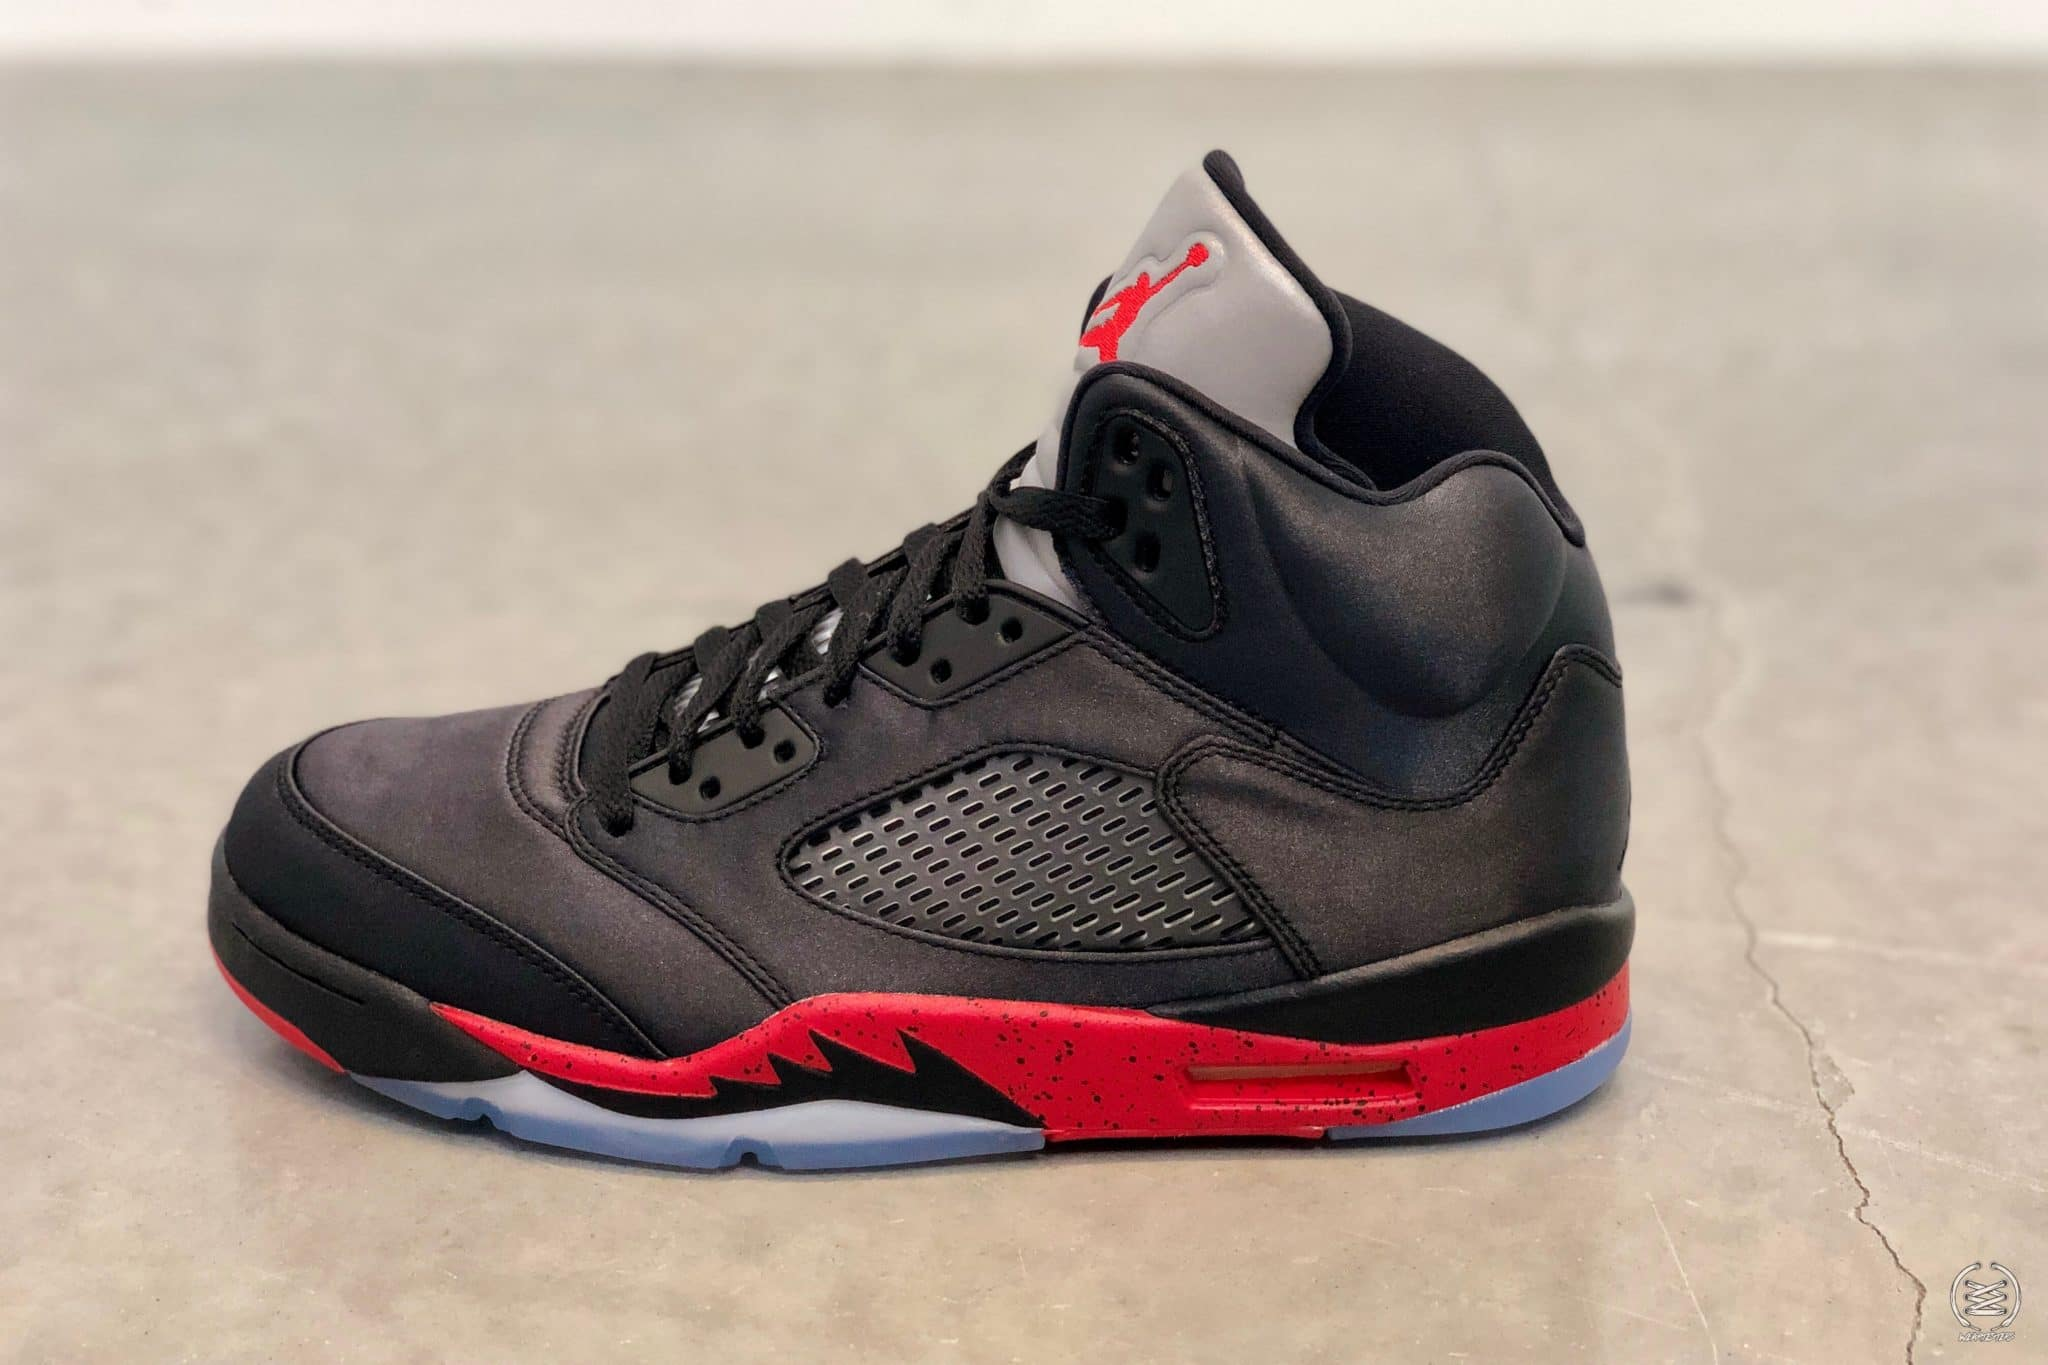 on sale 91ec8 4f9bf The Air Jordan 5 Satin Release Date Has Been Moved Up ...